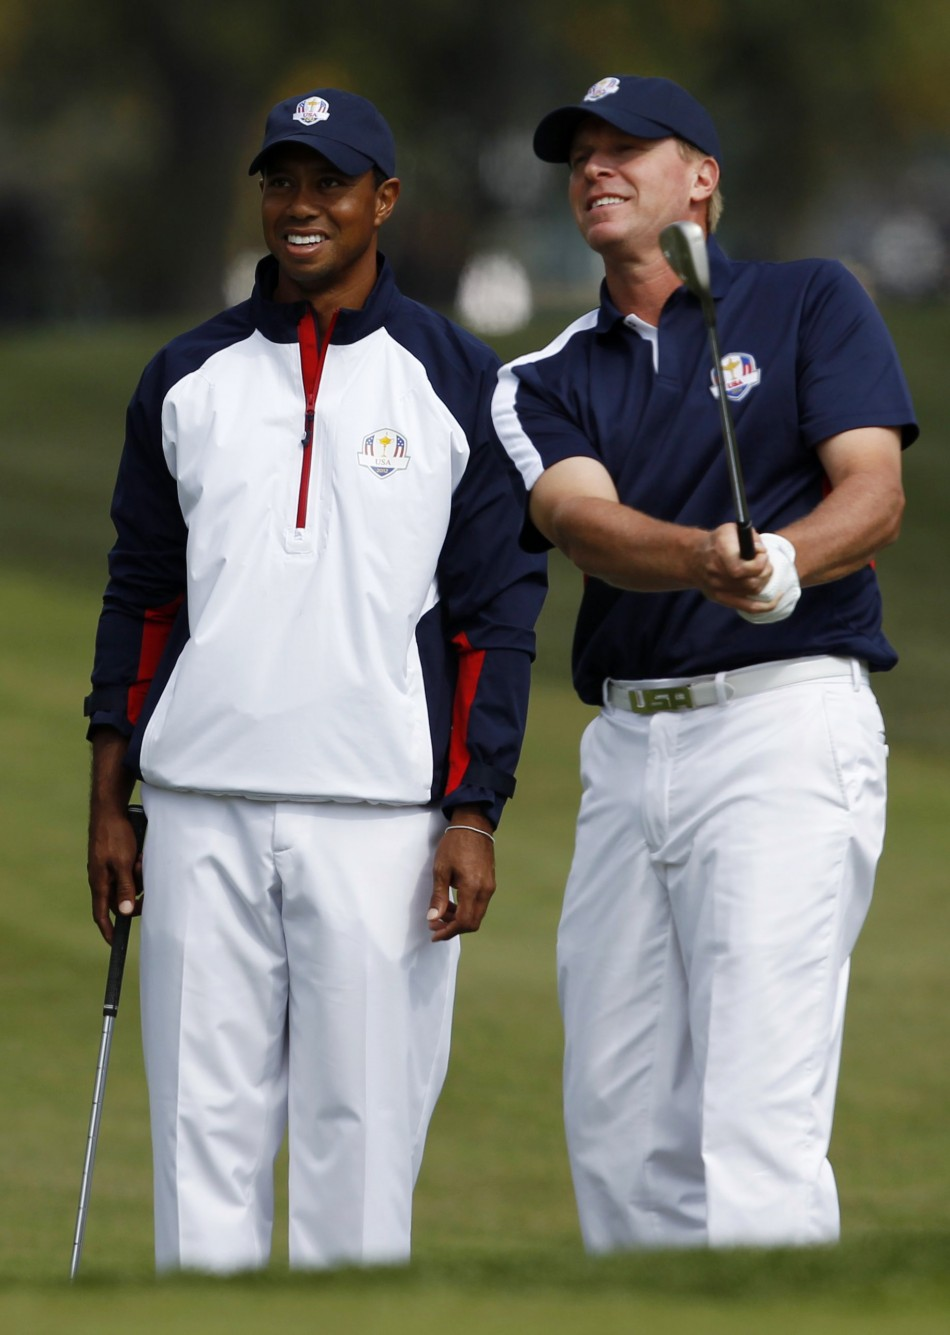 Woods and Stricker